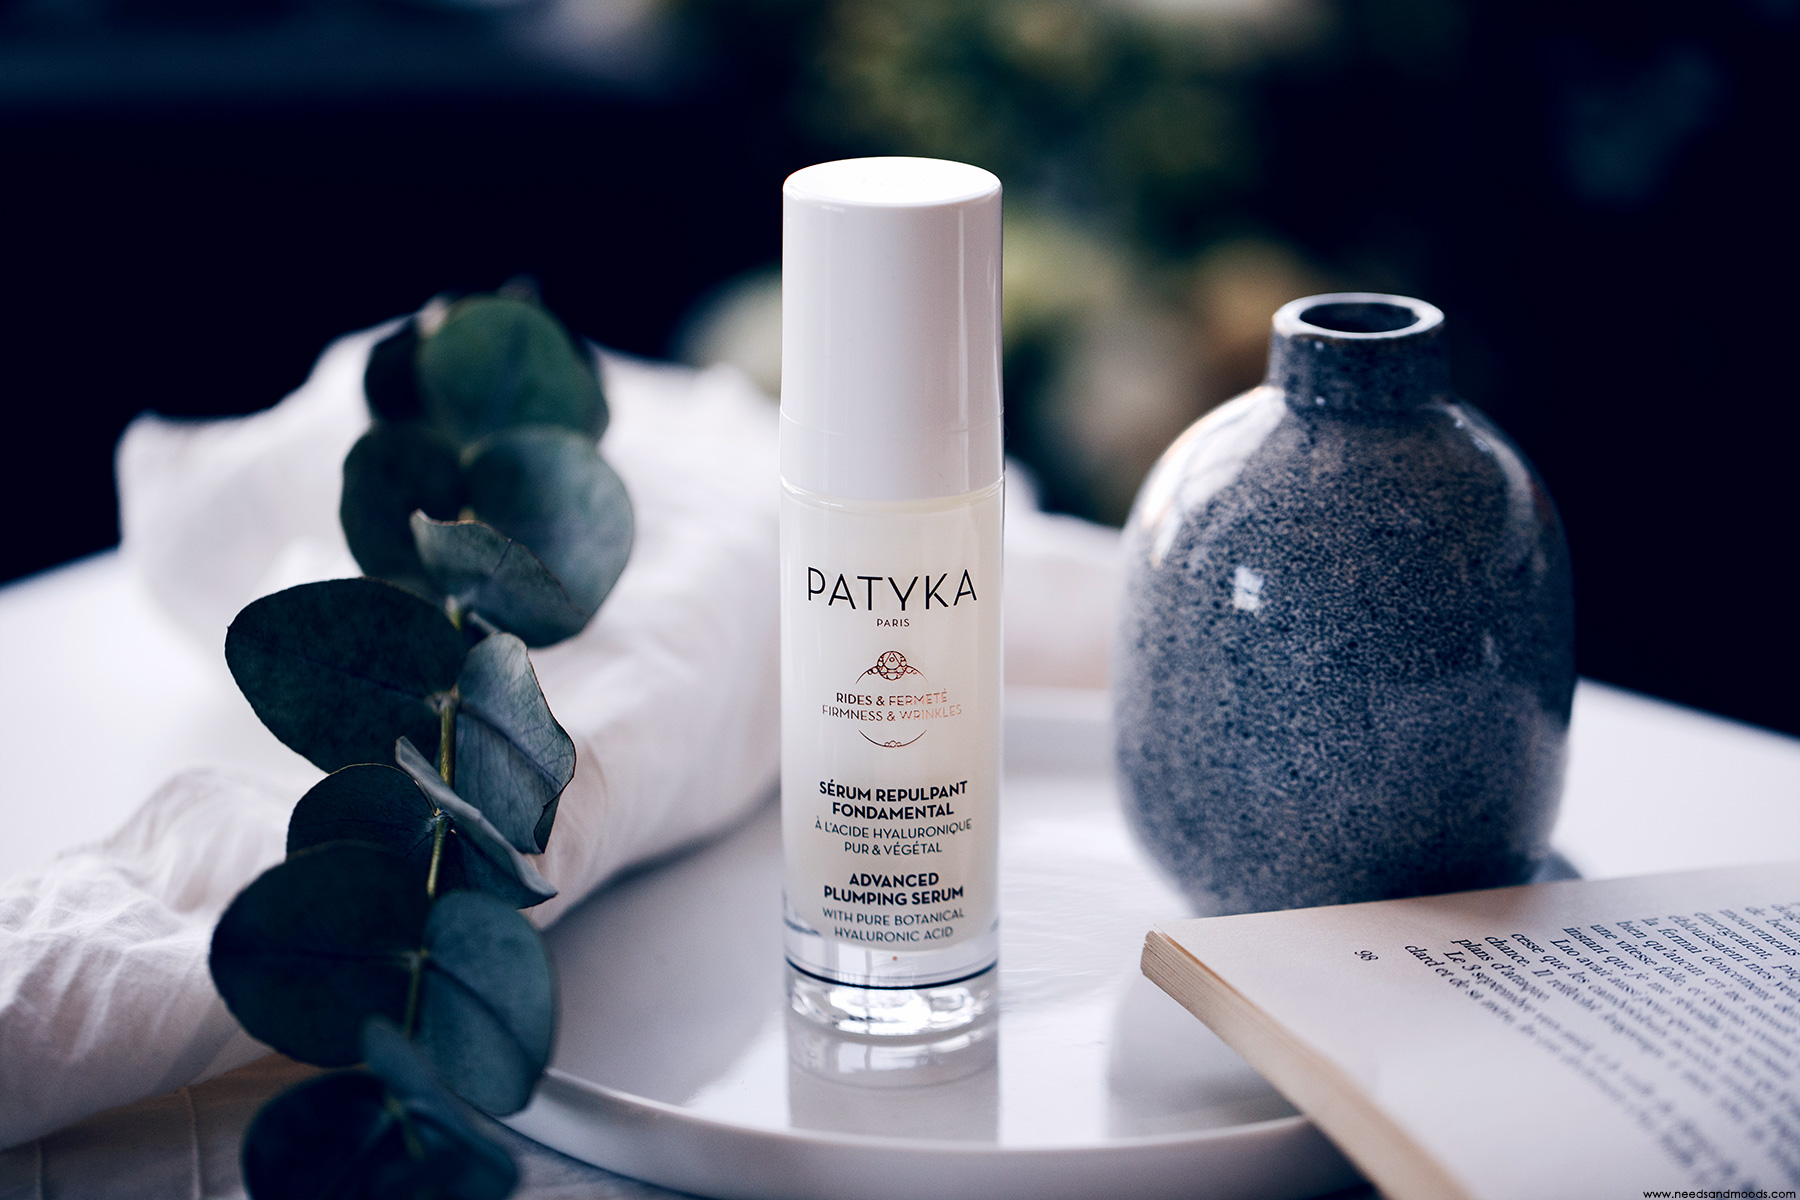 patyka serum repulpant fondamental avis